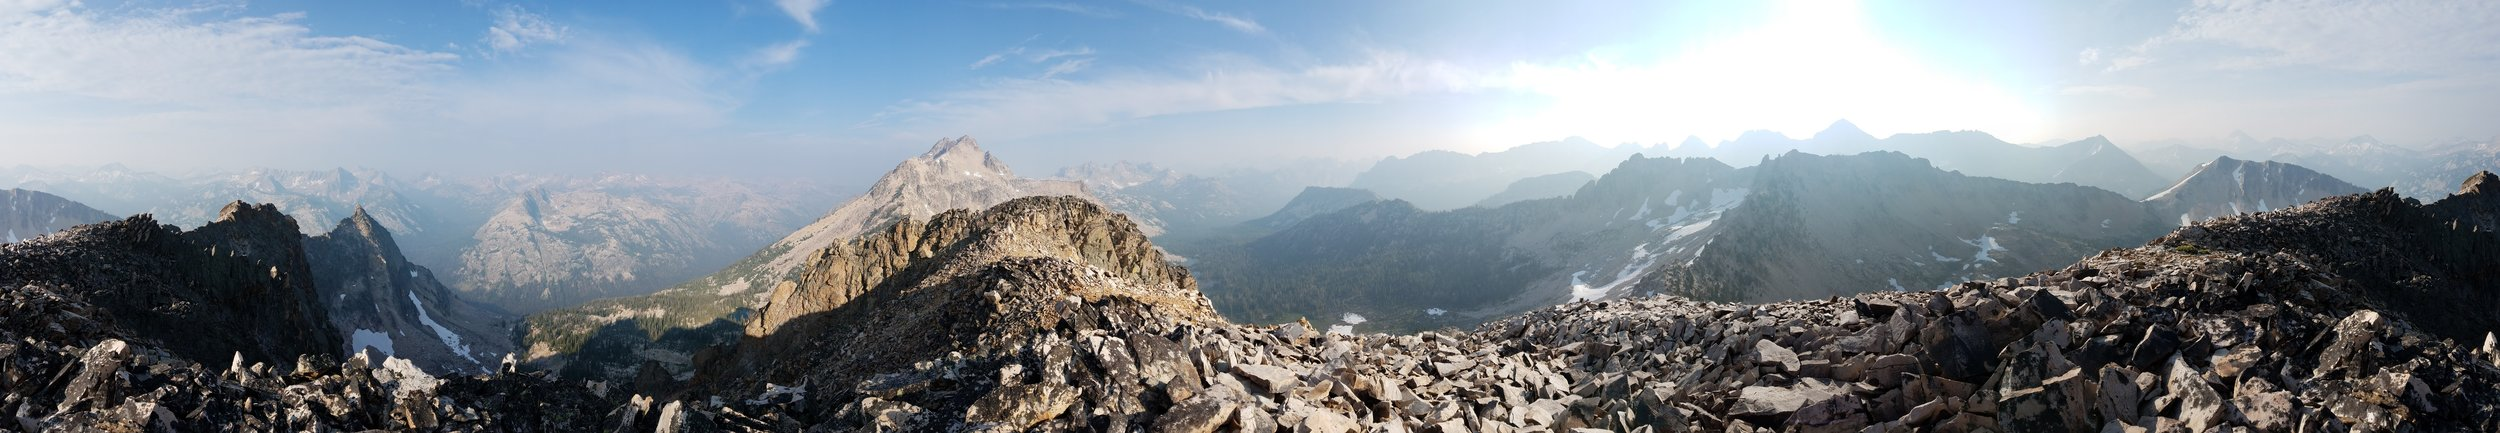 Panorama from the top of Peak 10,060. Nothing but wilderness. North is approximately dead center, looking down Redfish Lake Creek. Click for a larger image.